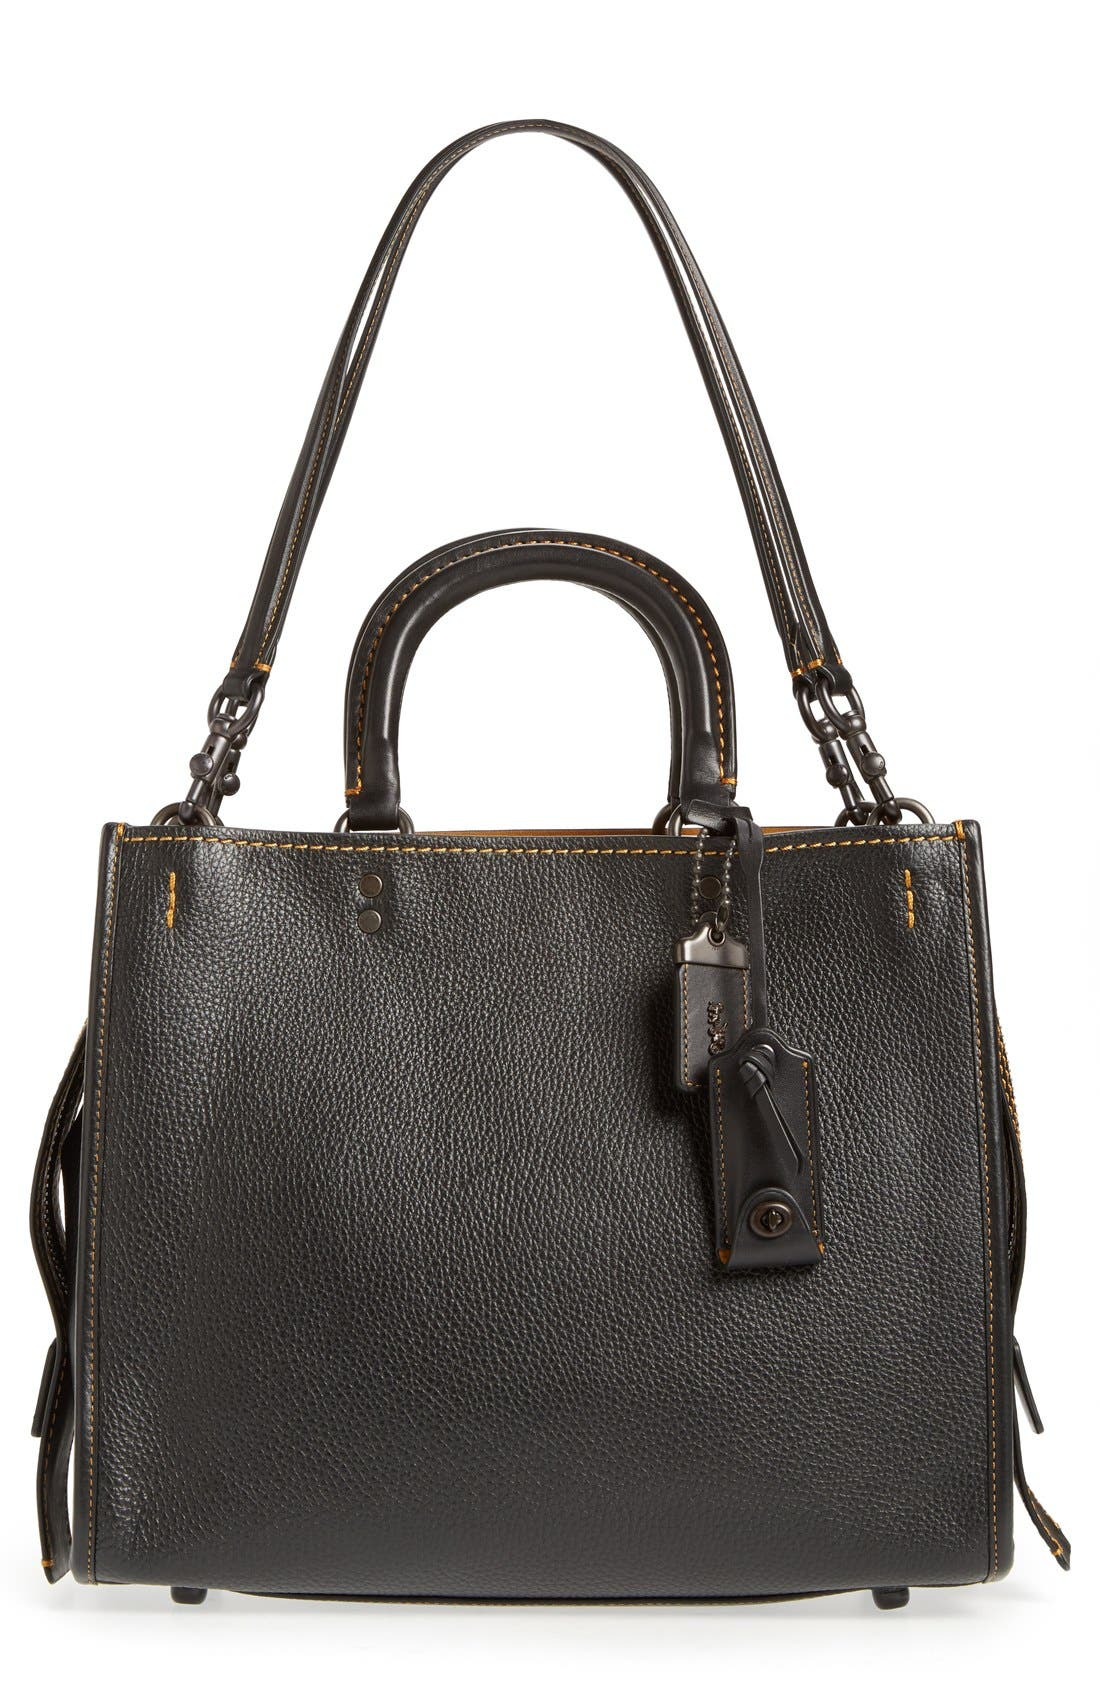 Main Image - COACH 1941 'Rogue' Leather Satchel